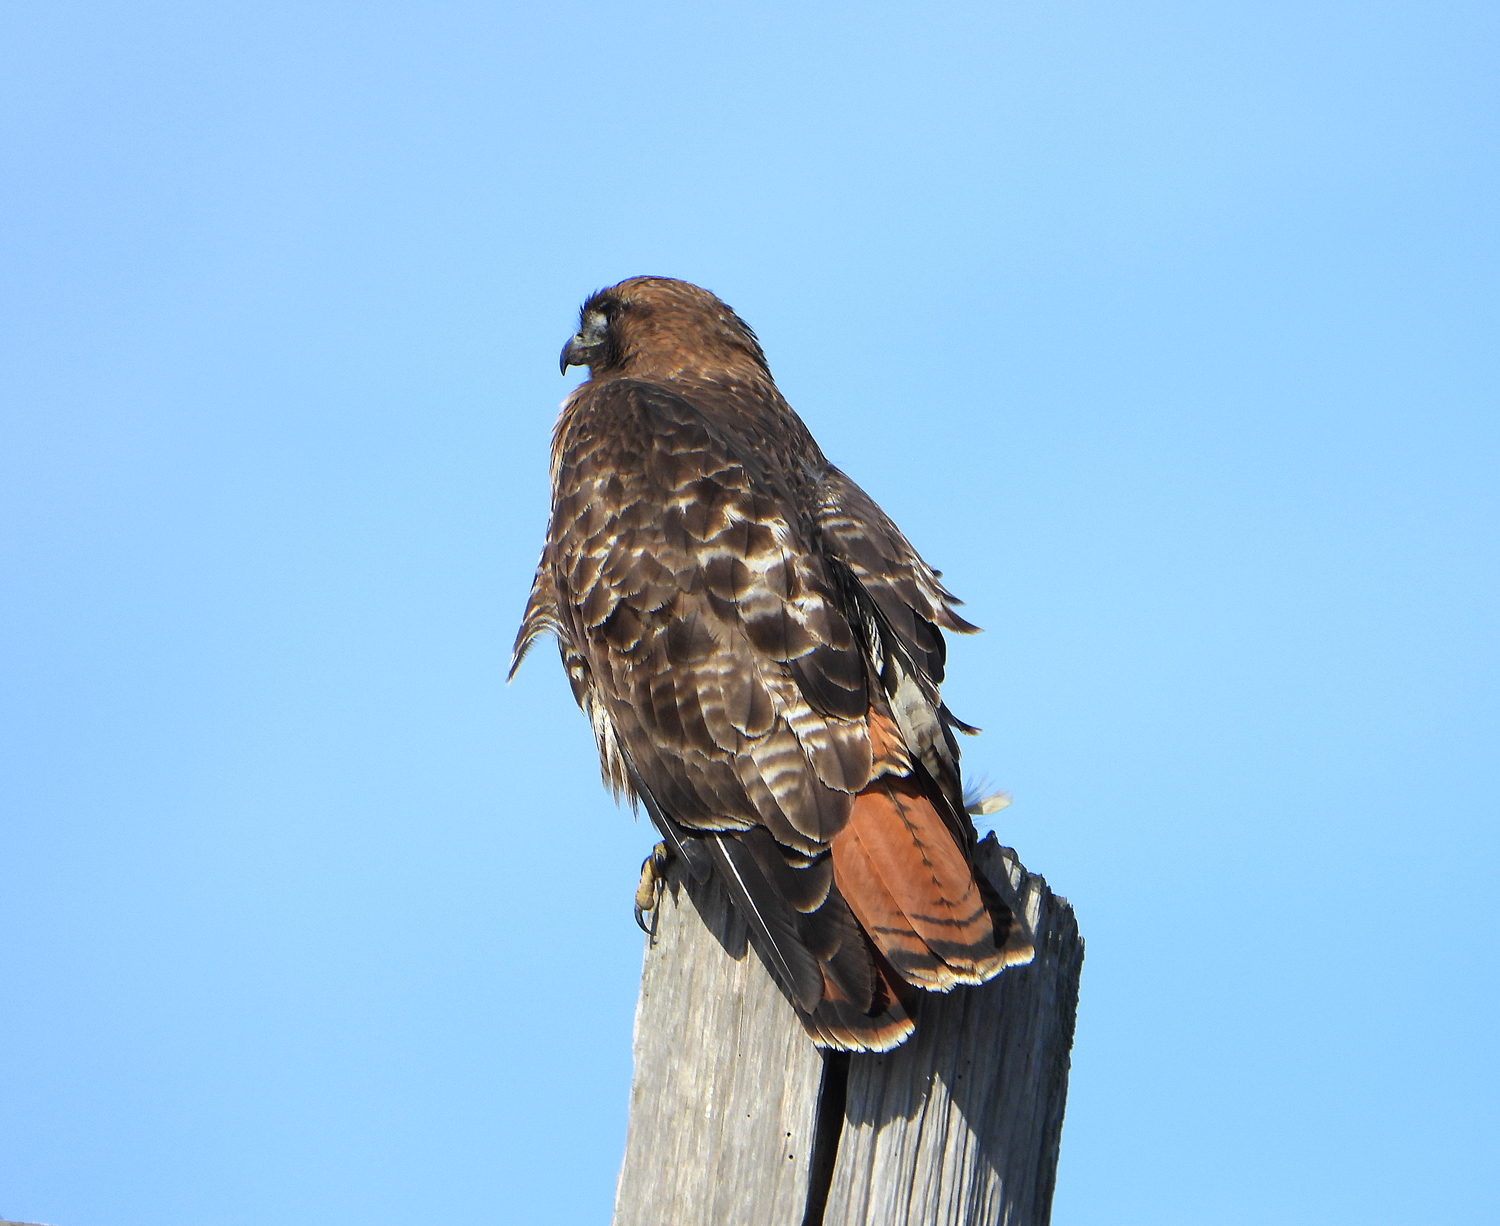 A dark hawk with striking red tail looks into the distance from its perch on a grey post.